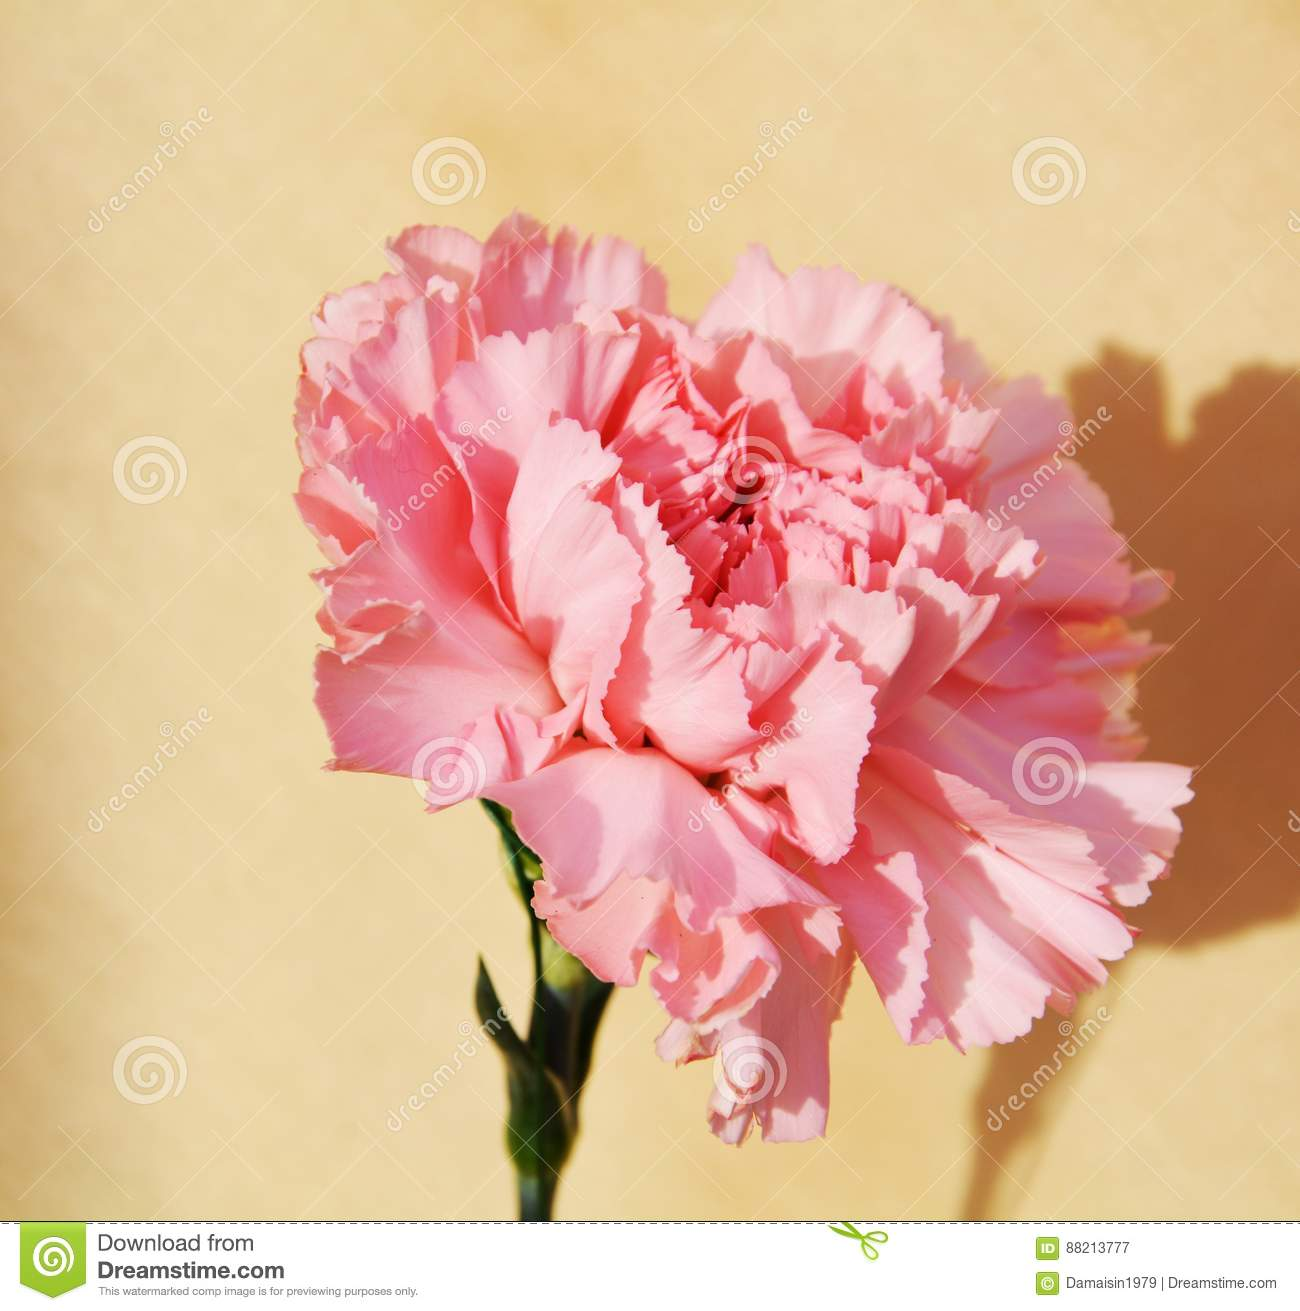 Celebrating delicacy symbol stock image image of flowers grace celebrating delicacy symbol izmirmasajfo